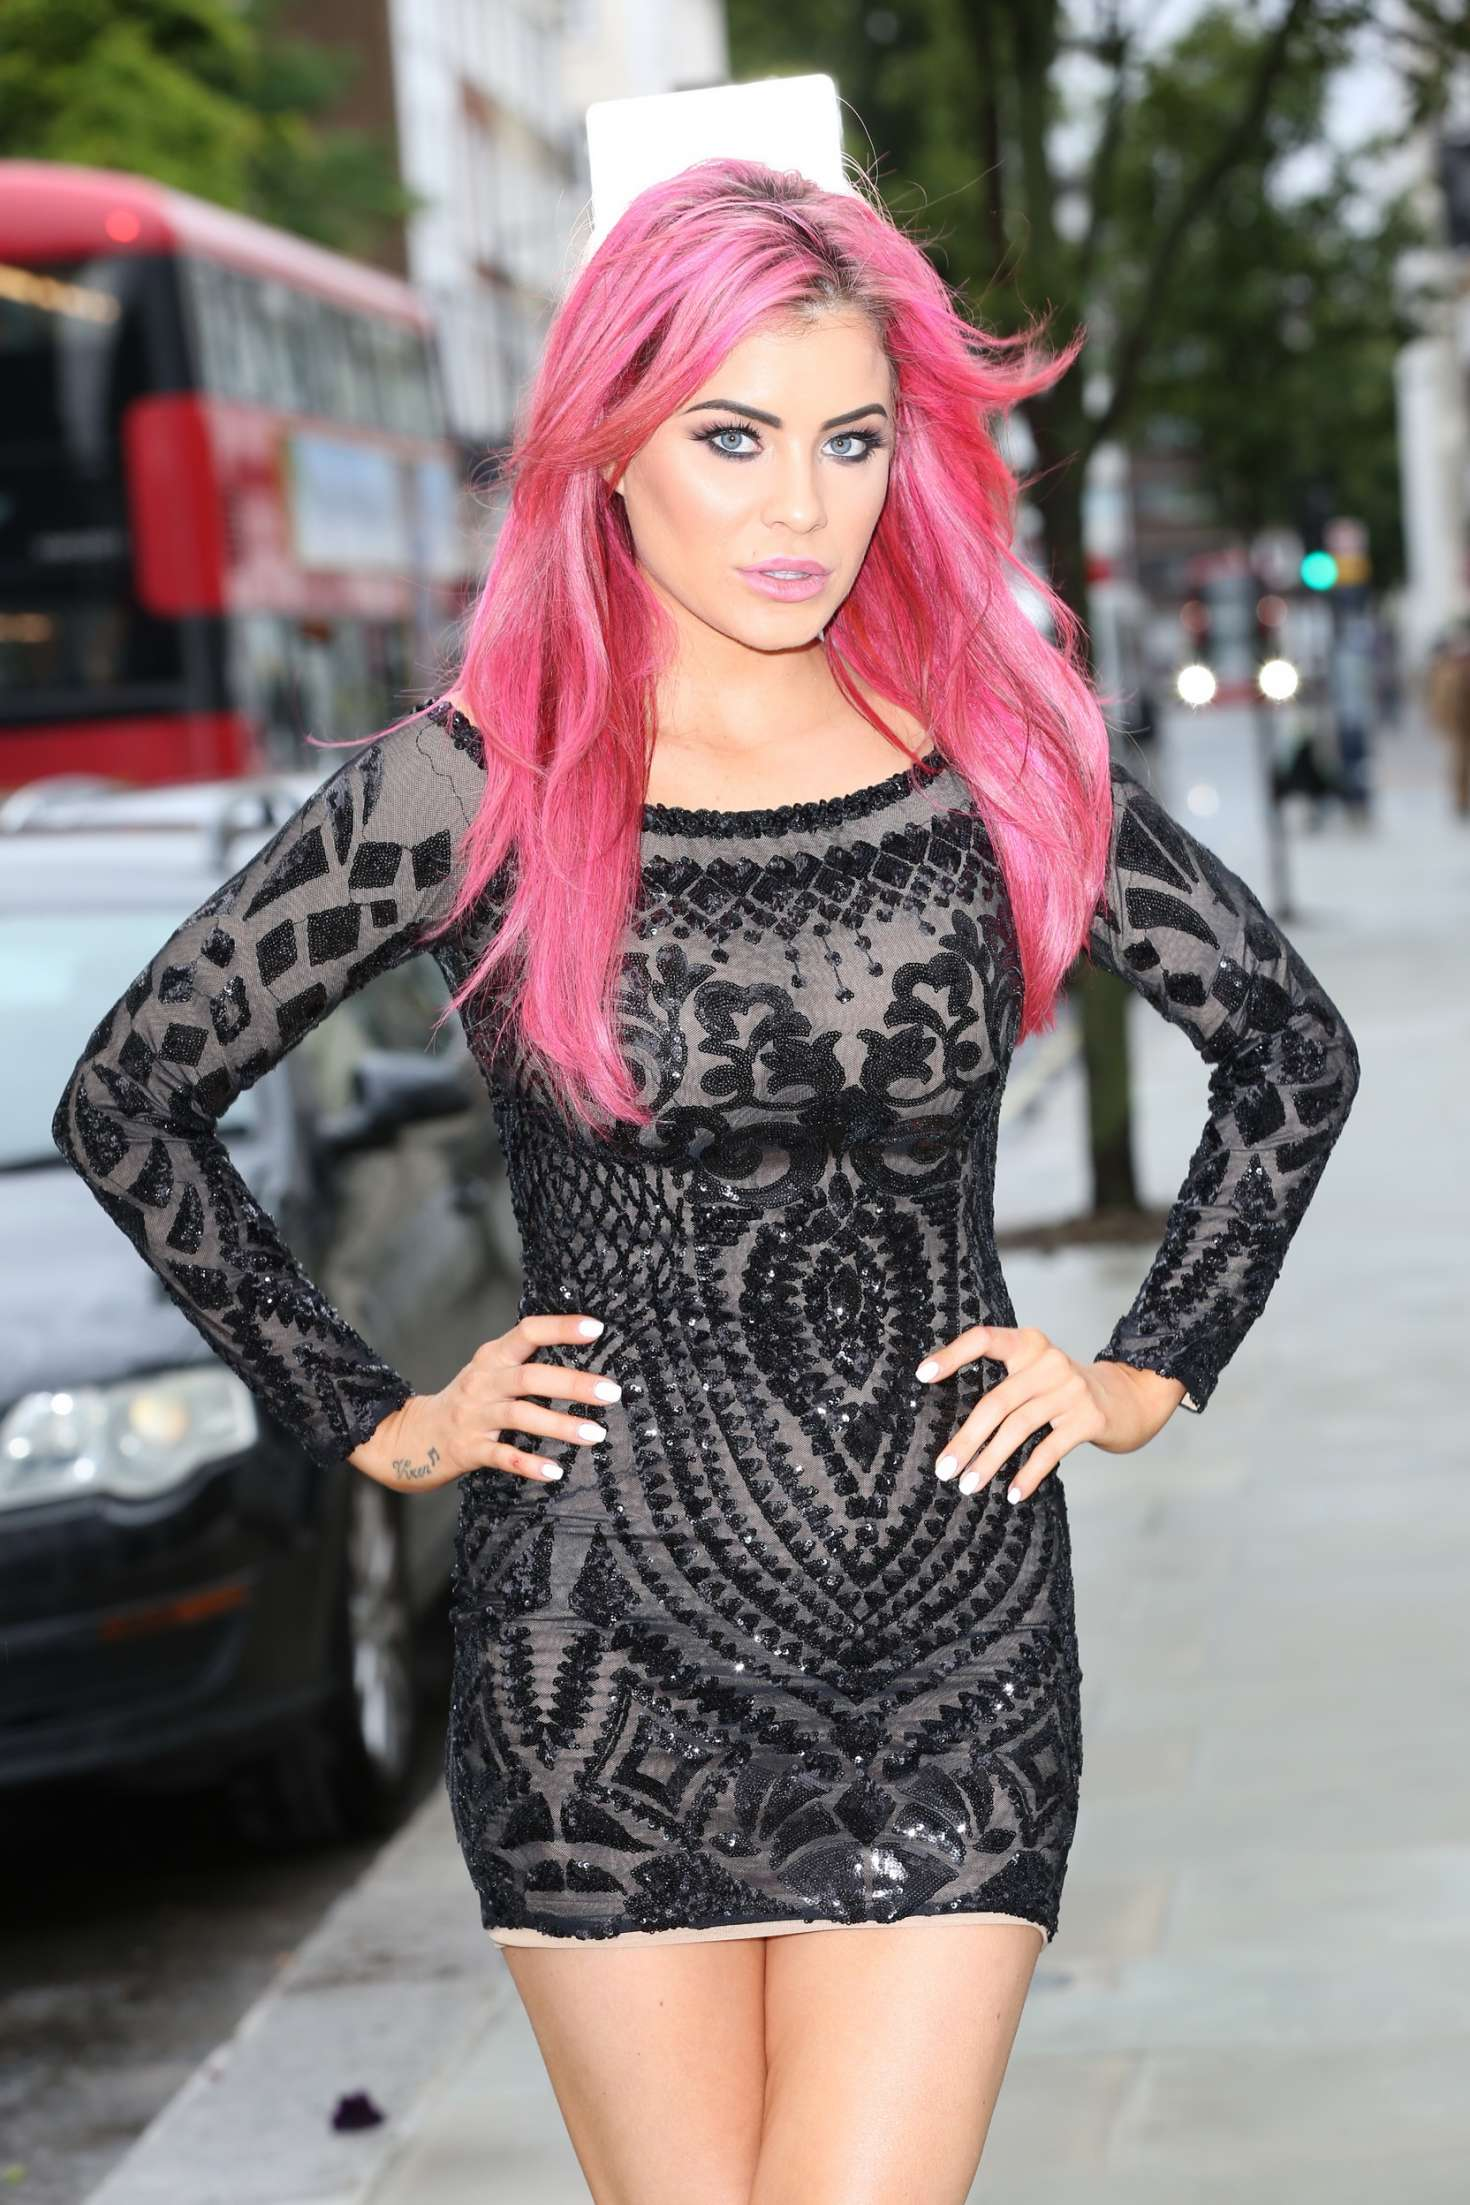 Carla howe in mini dress atomic blonde film event at village underground in london nudes (39 photo), Paparazzi Celebrity pictures